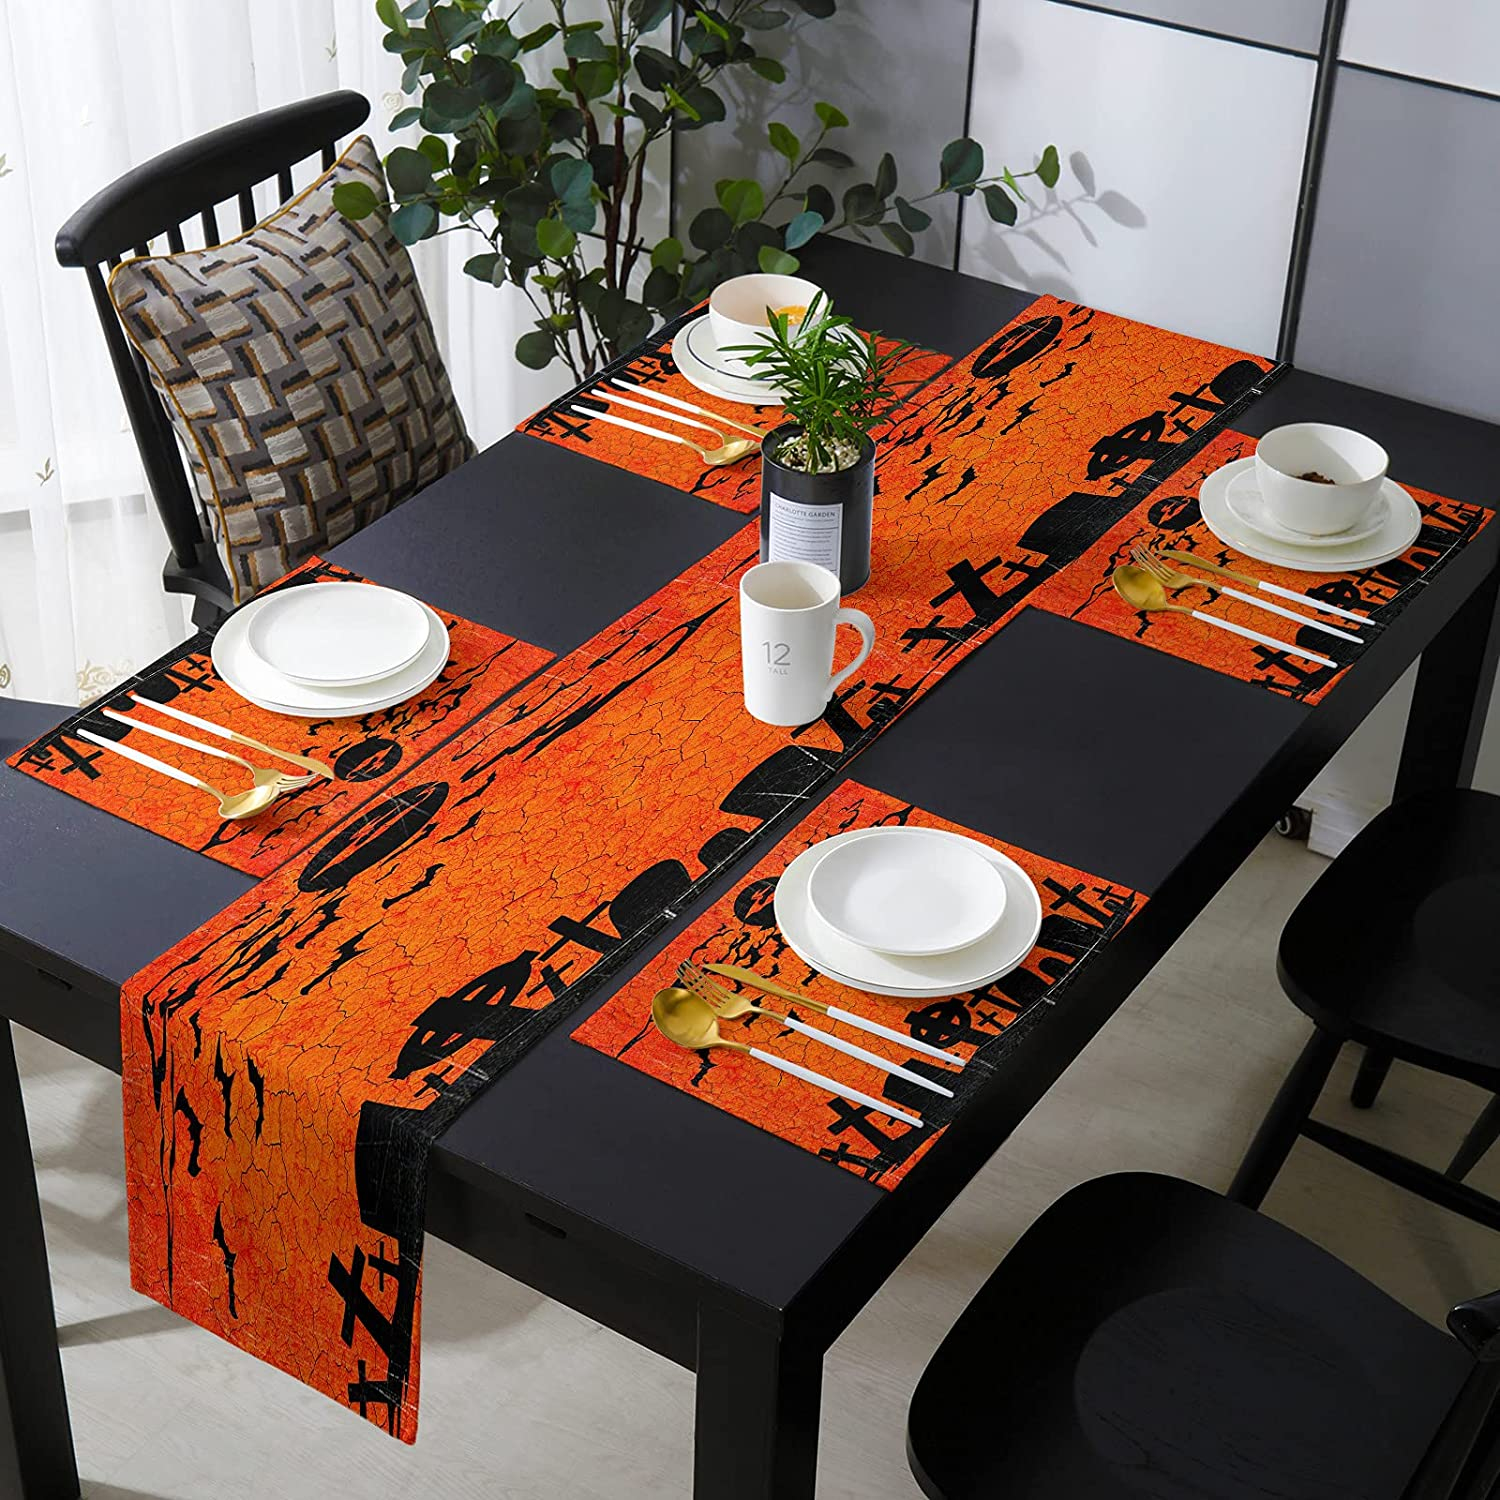 13 x 70 Inch Table Runner with Placemats Ba Red NEW quality assurance before selling ☆ of Set - Crack 6